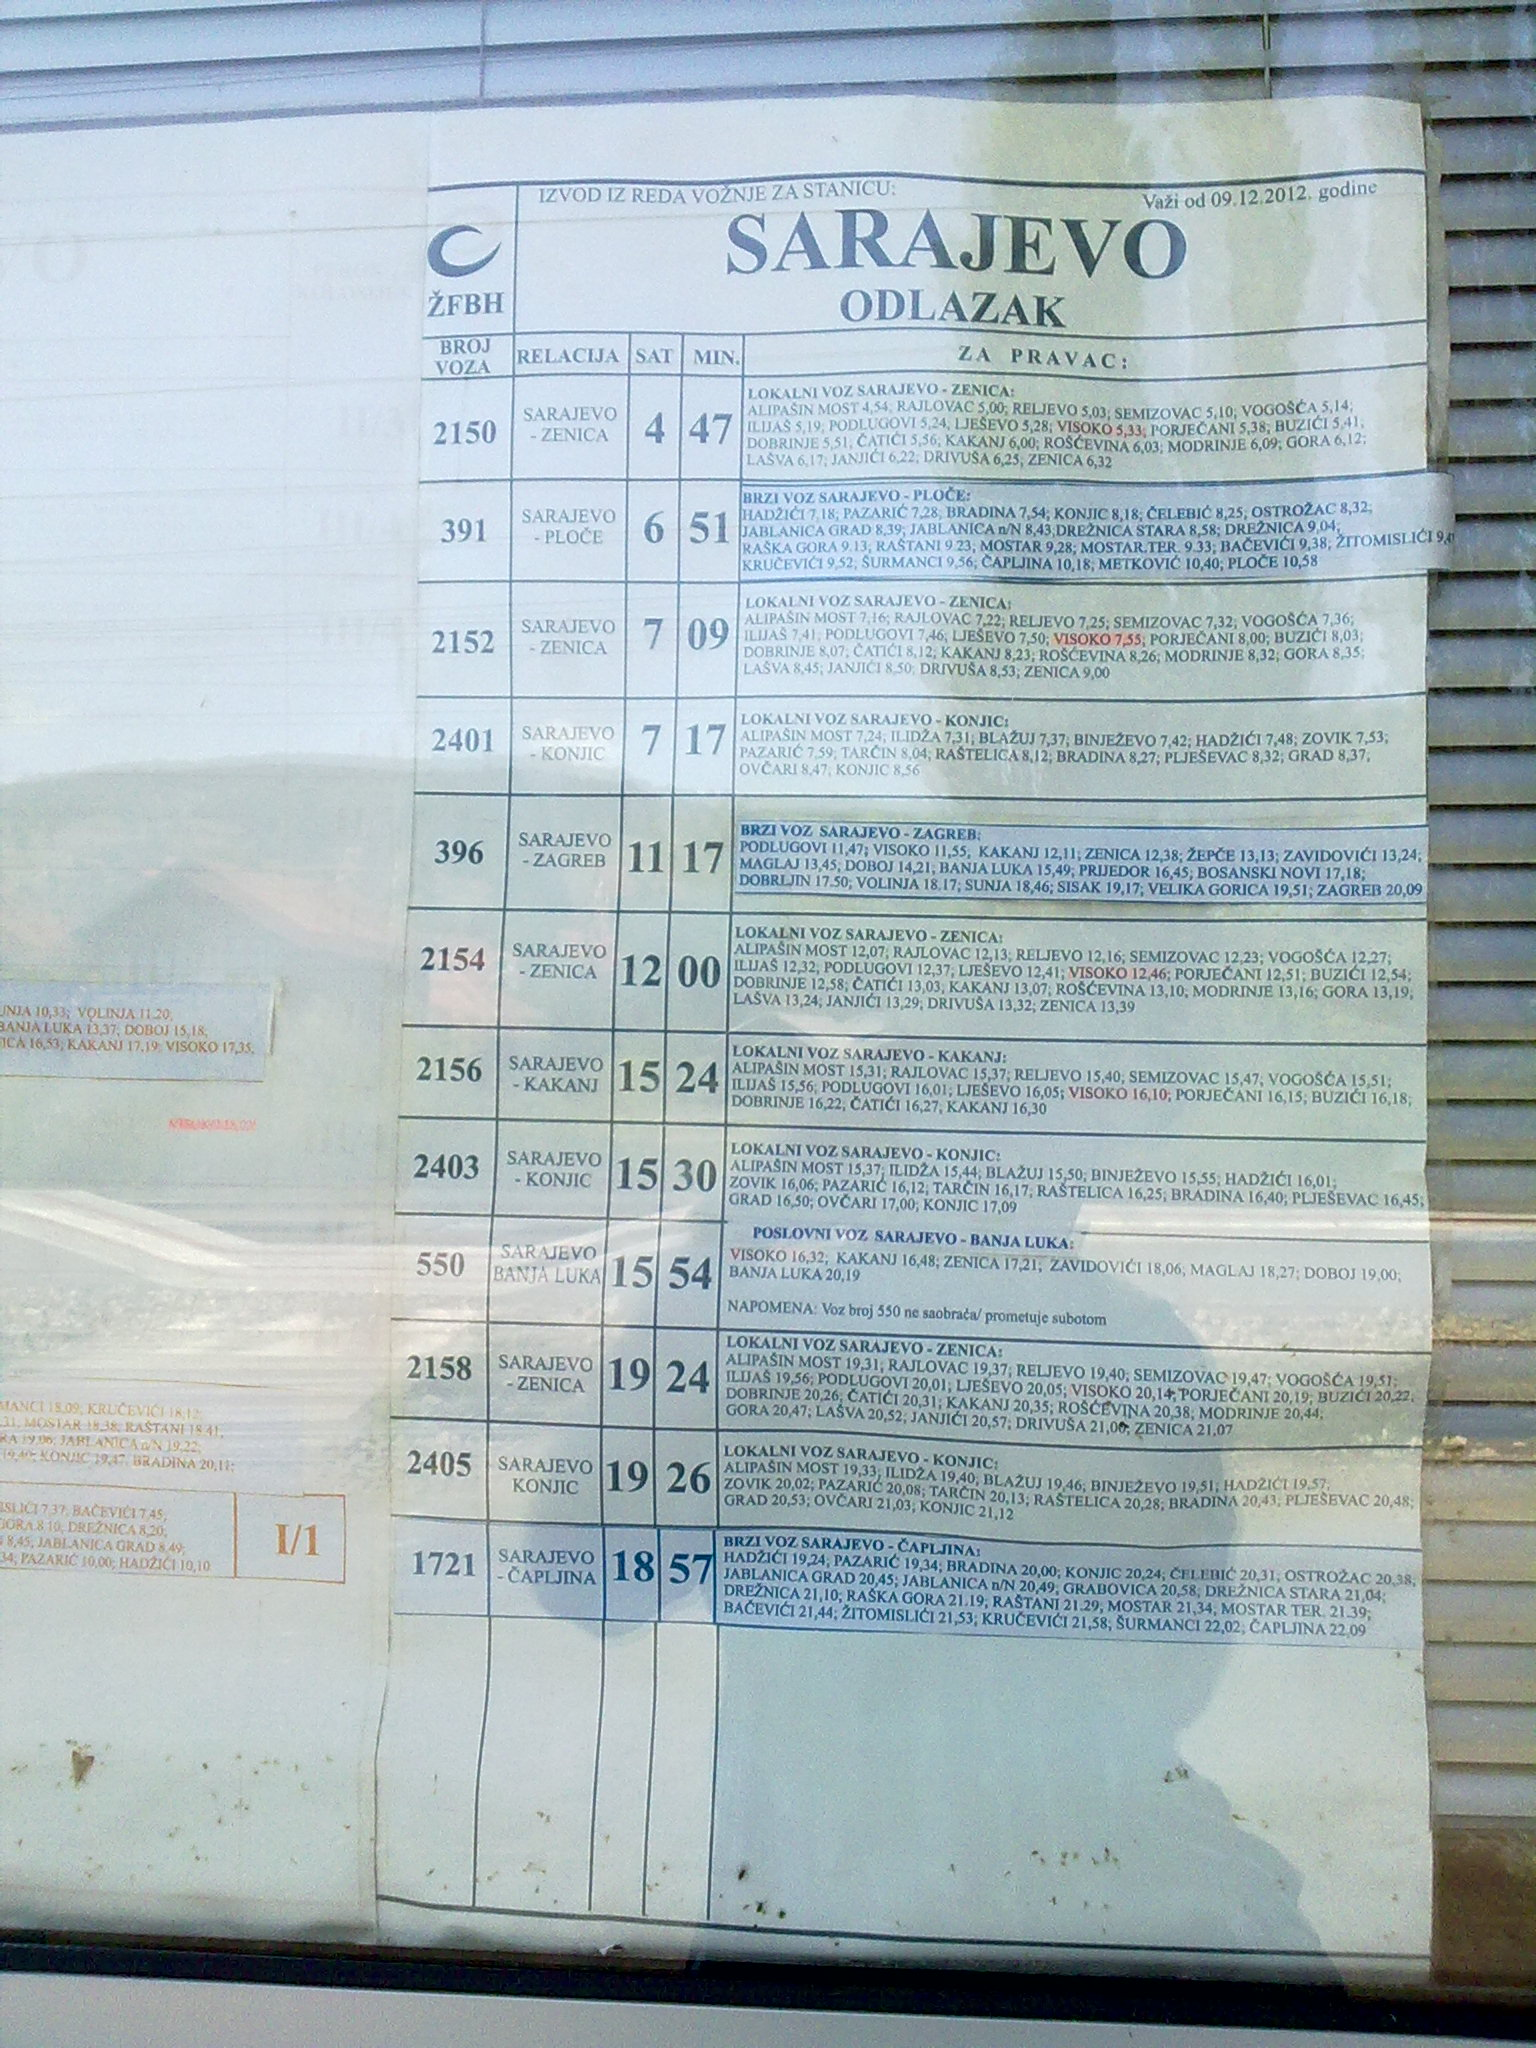 Timetable for trains departing from